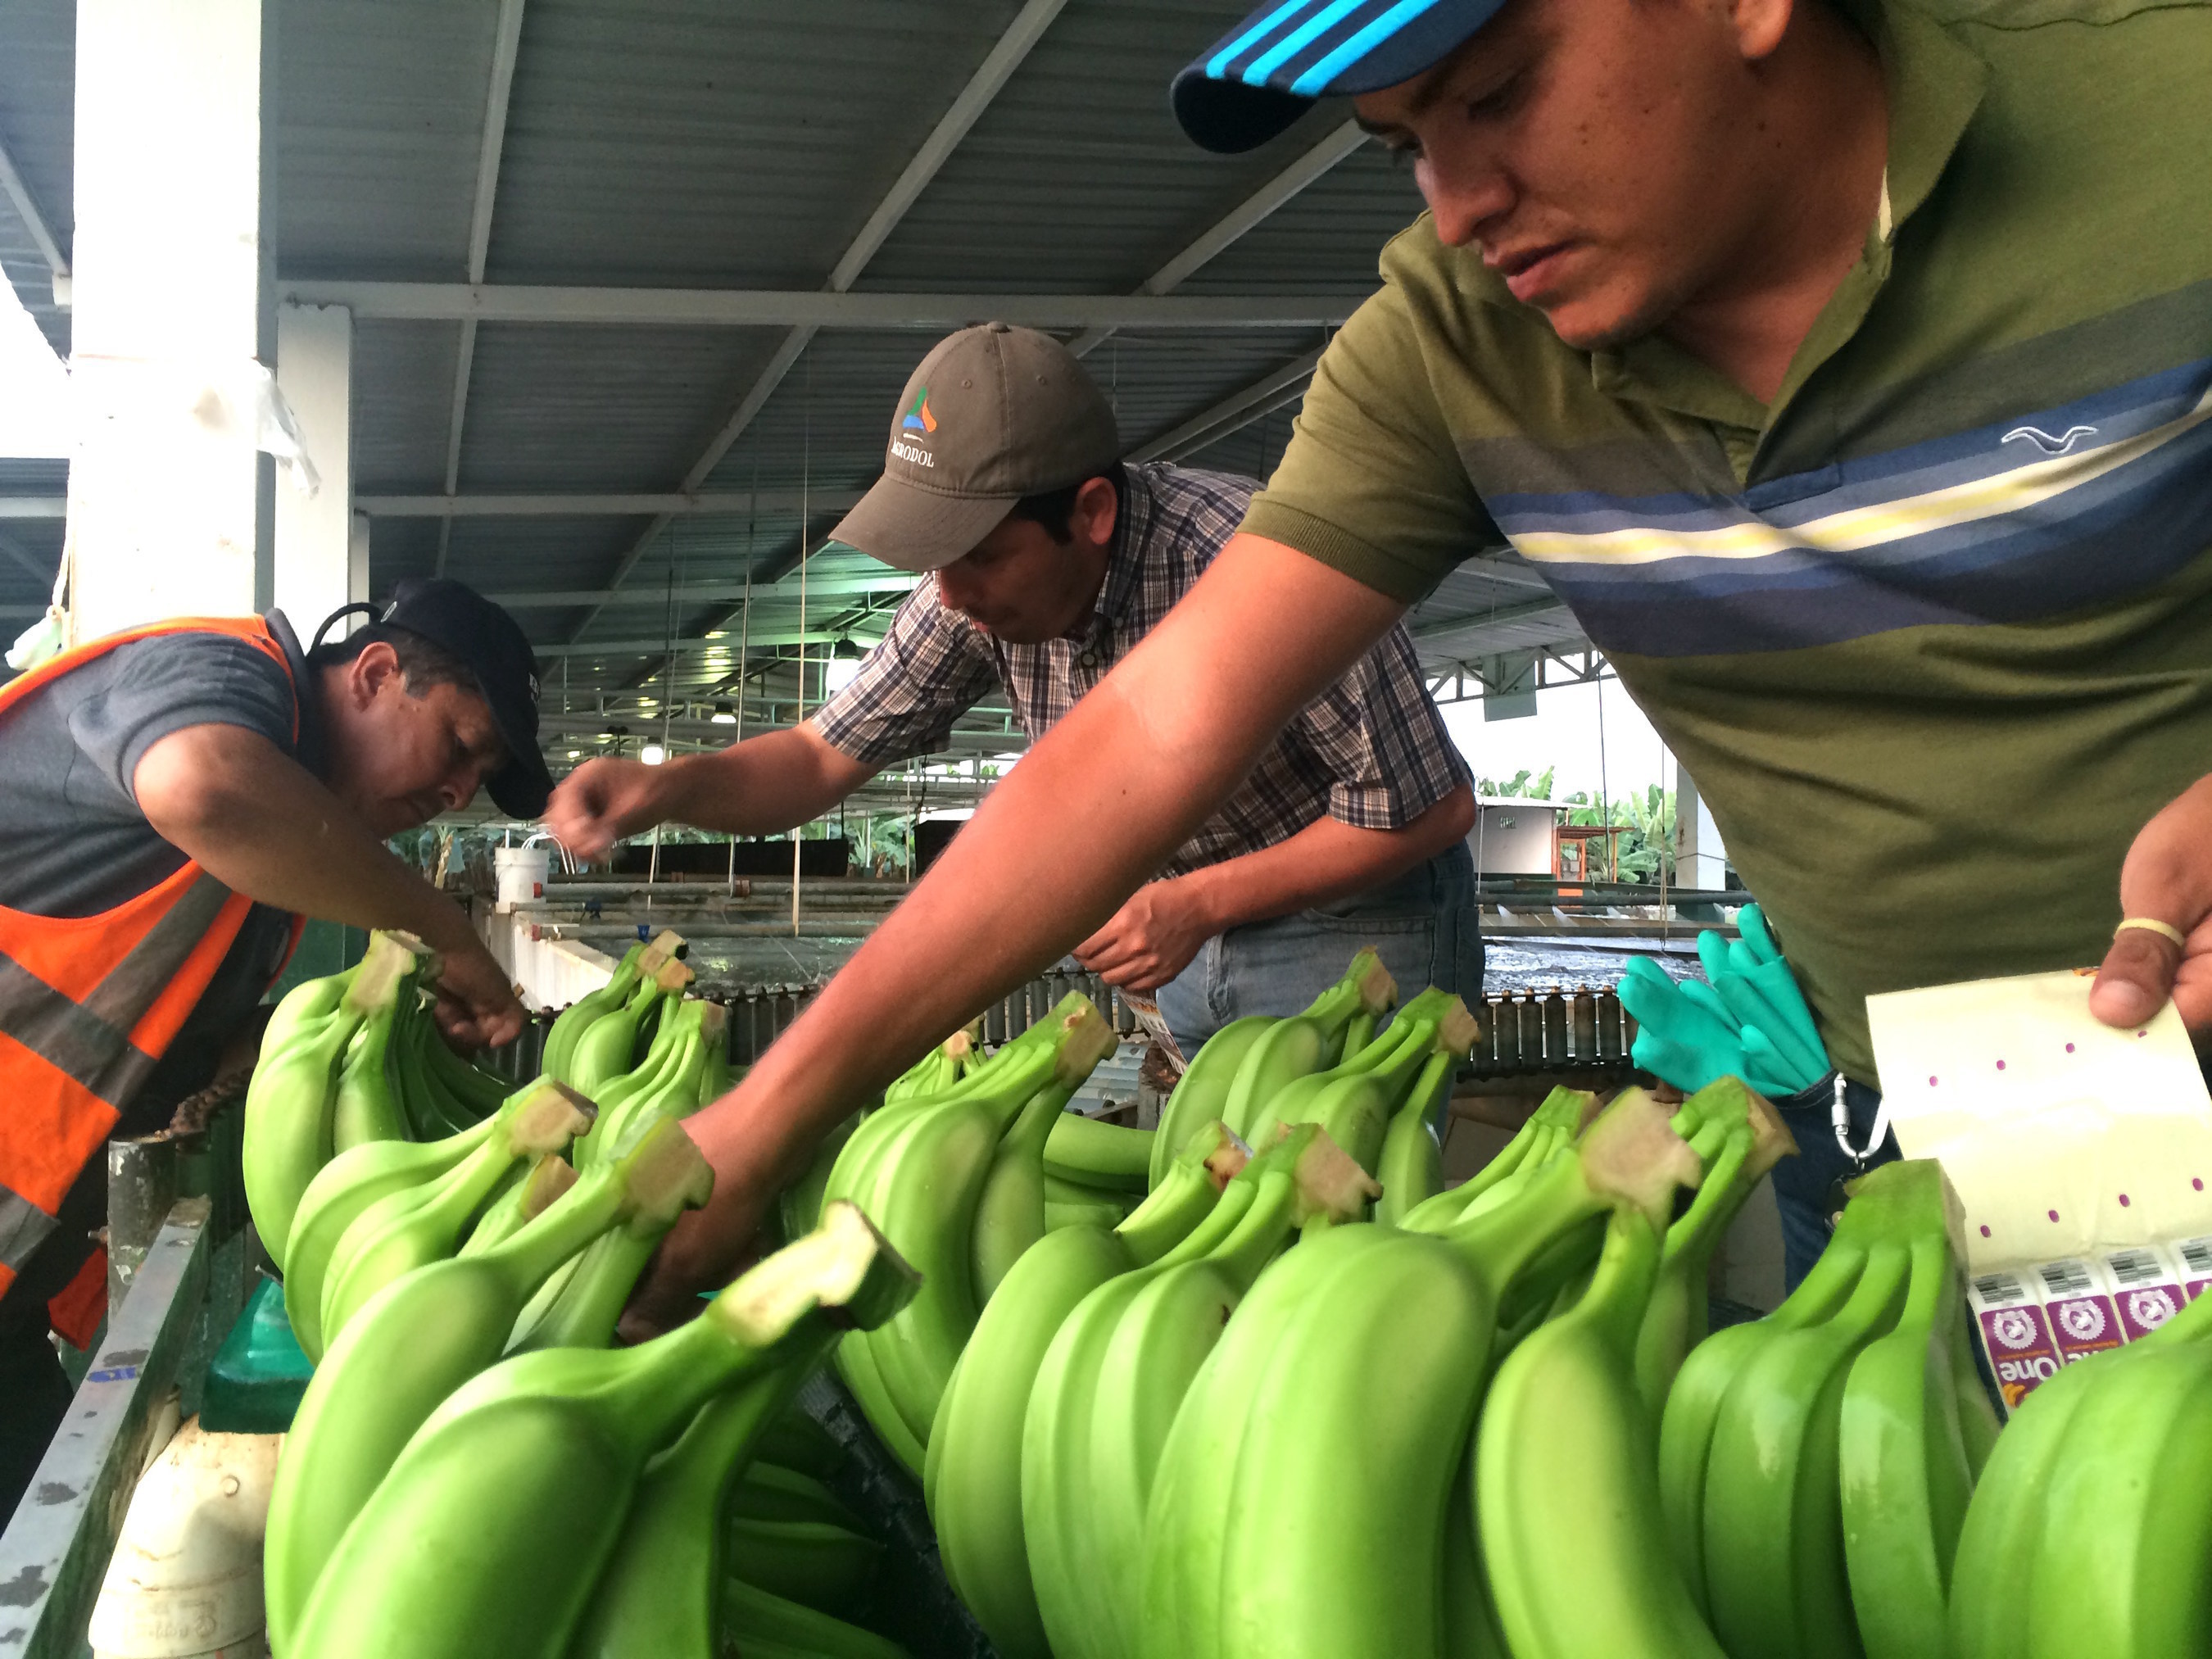 Frequentz, Inc, a global leader and champion of end-to-end visibility, has entered an exclusive global partnership with its customer, One Banana, to help meet the worldwide demand for responsibly produced food.